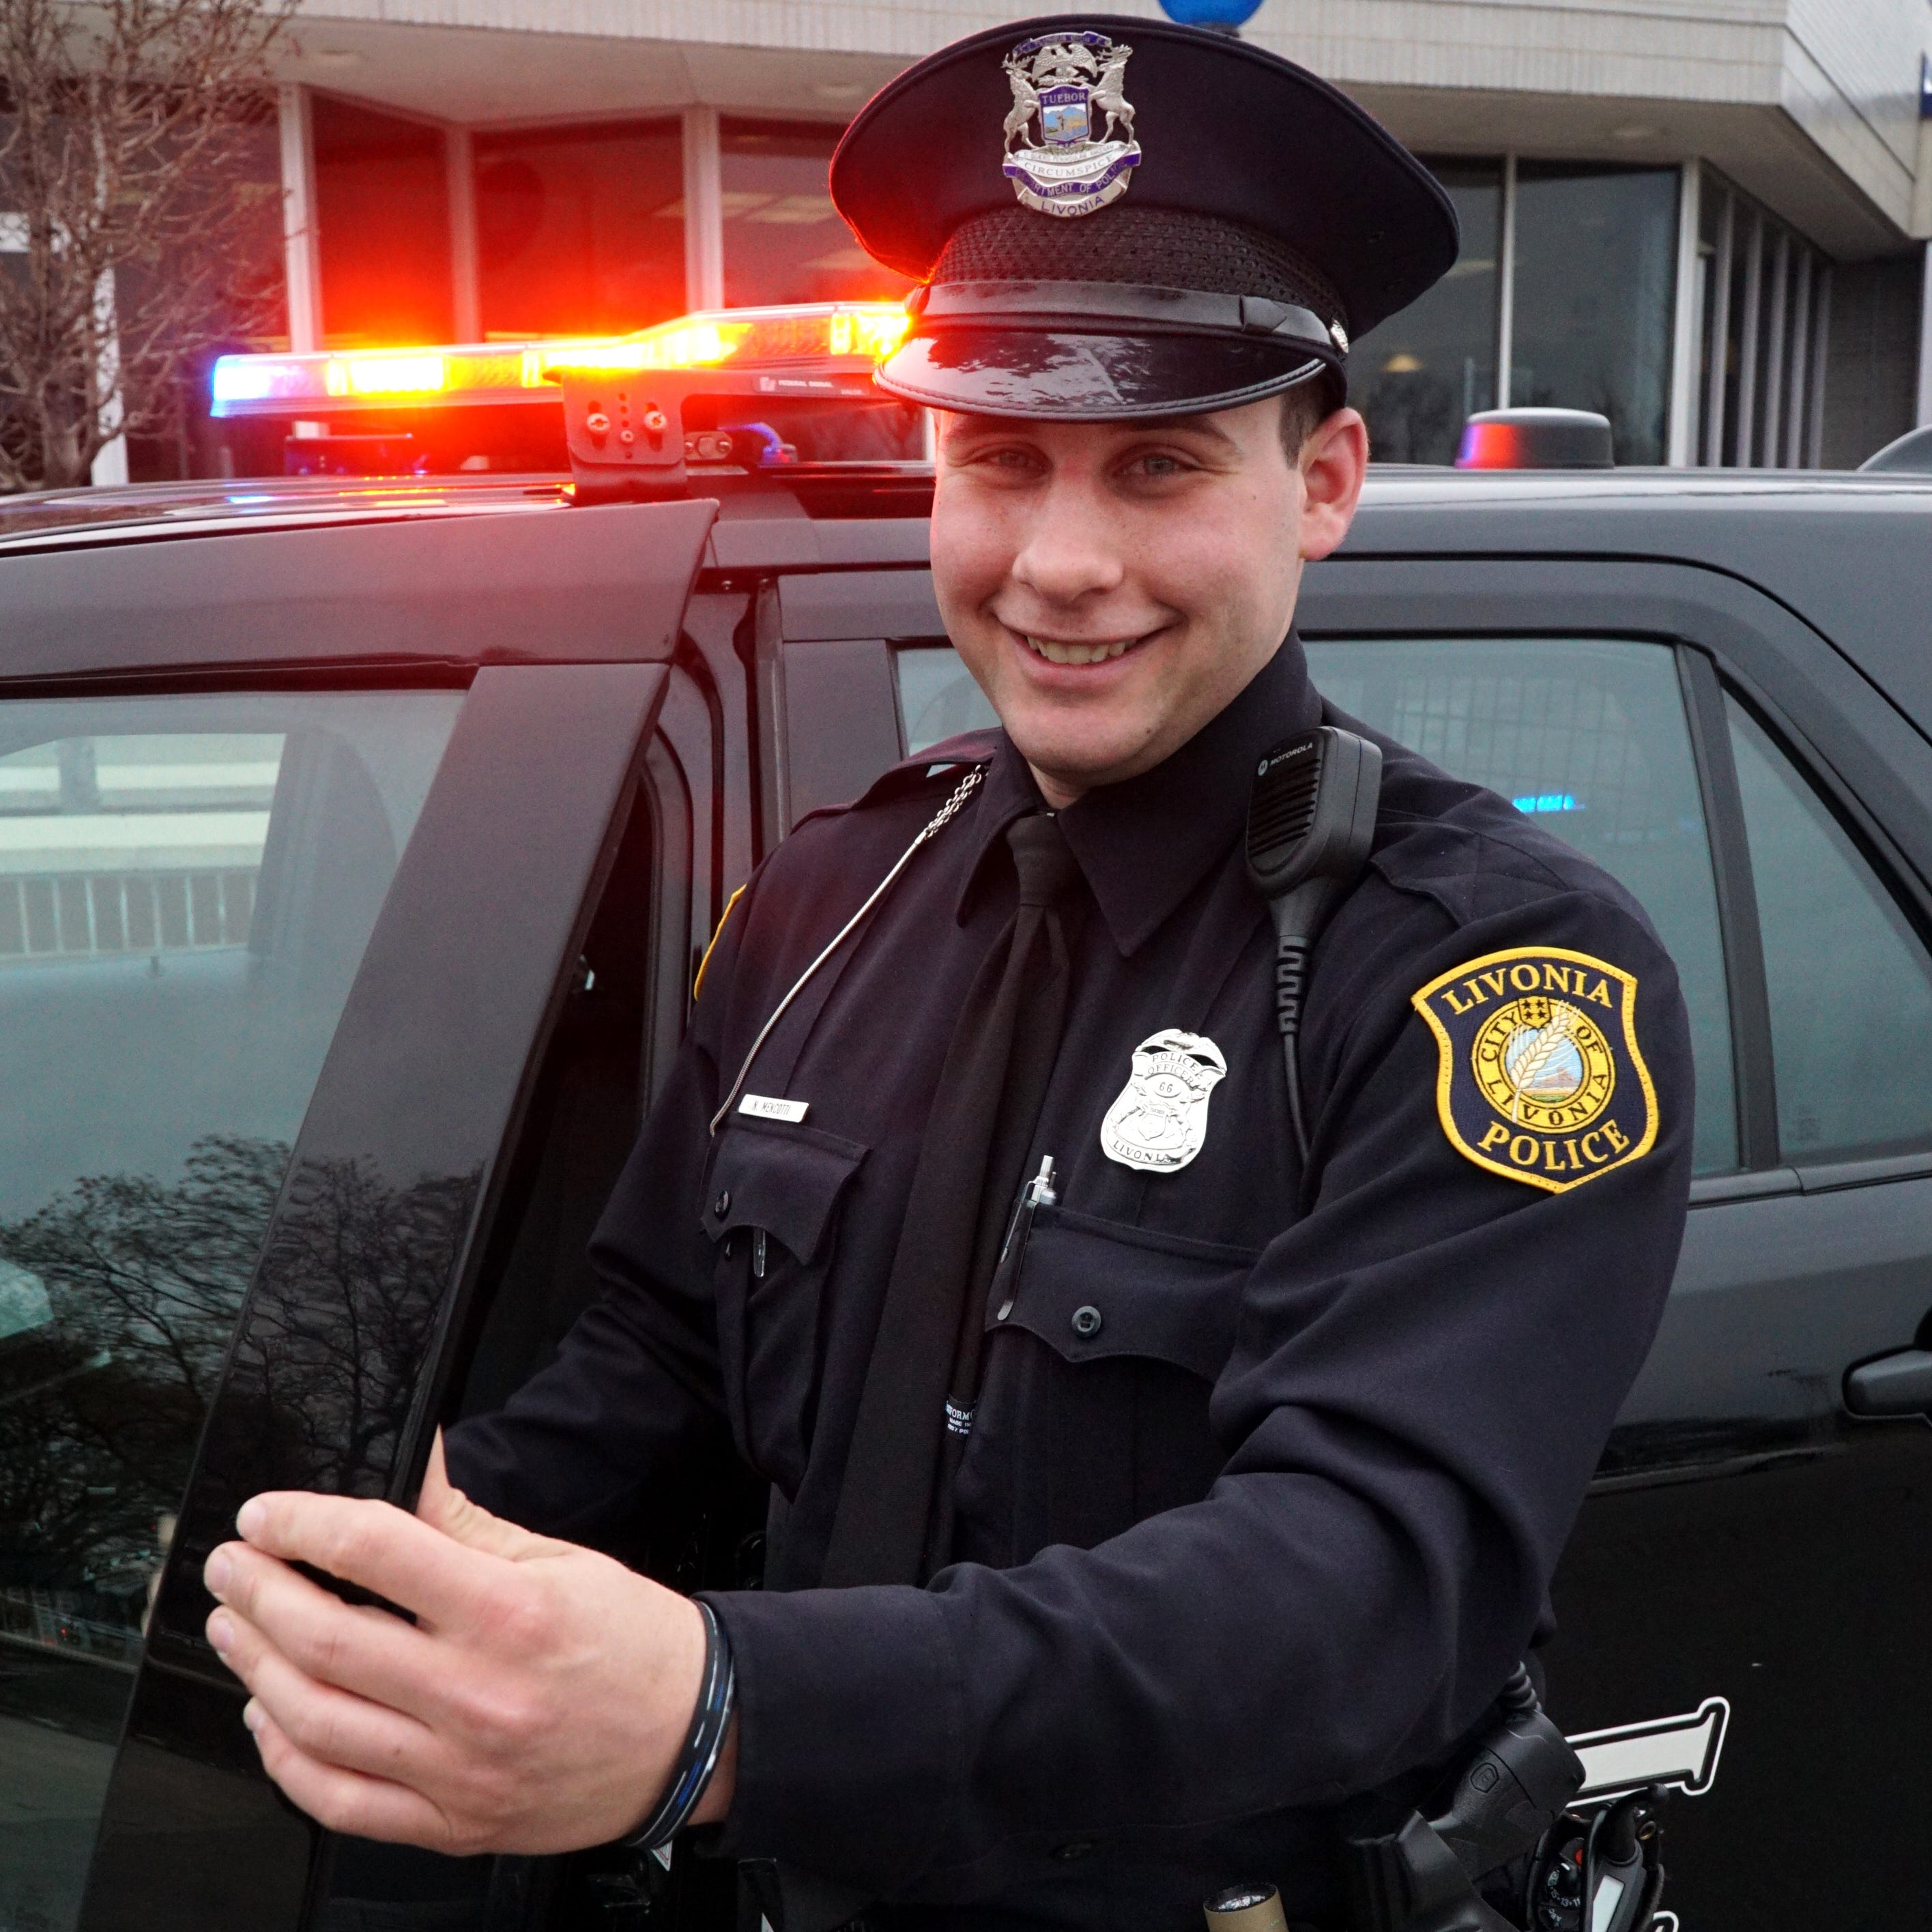 Rookie cop among 50 honored by Livonia police last week